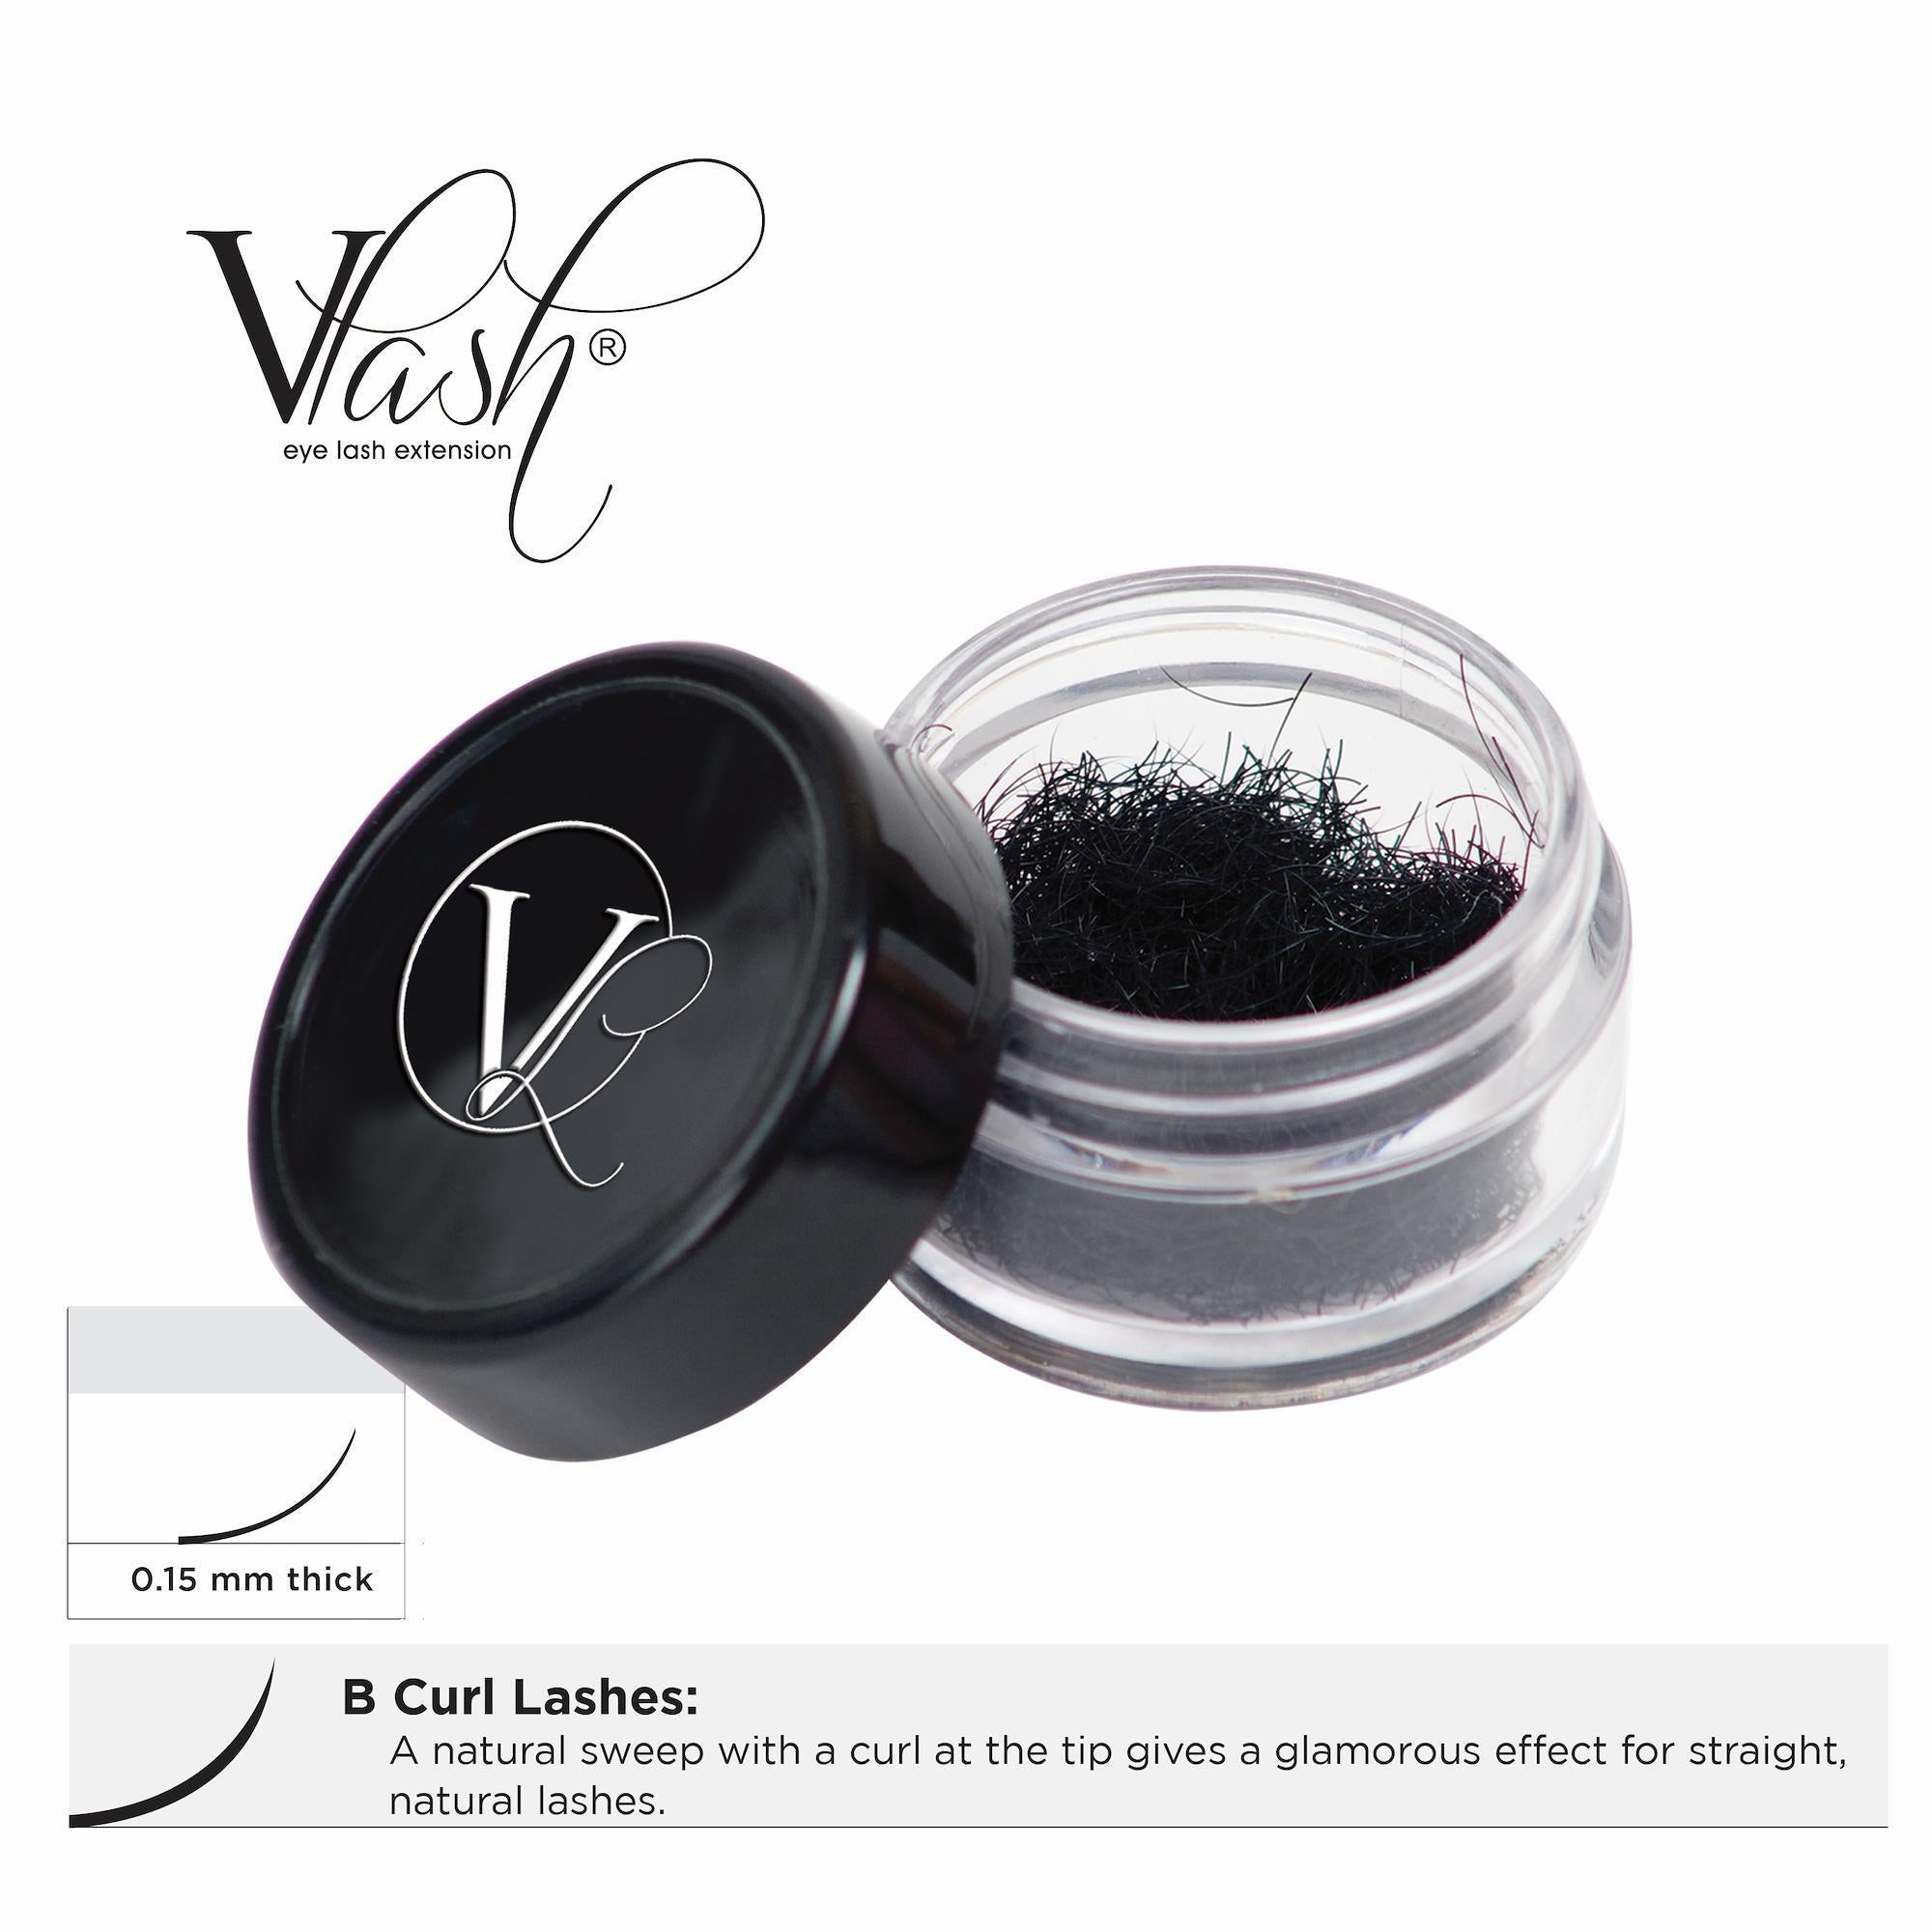 Lash Extensions, Strips, Acces 12mm VLash B Curl Jar Lashes / .15mm thick